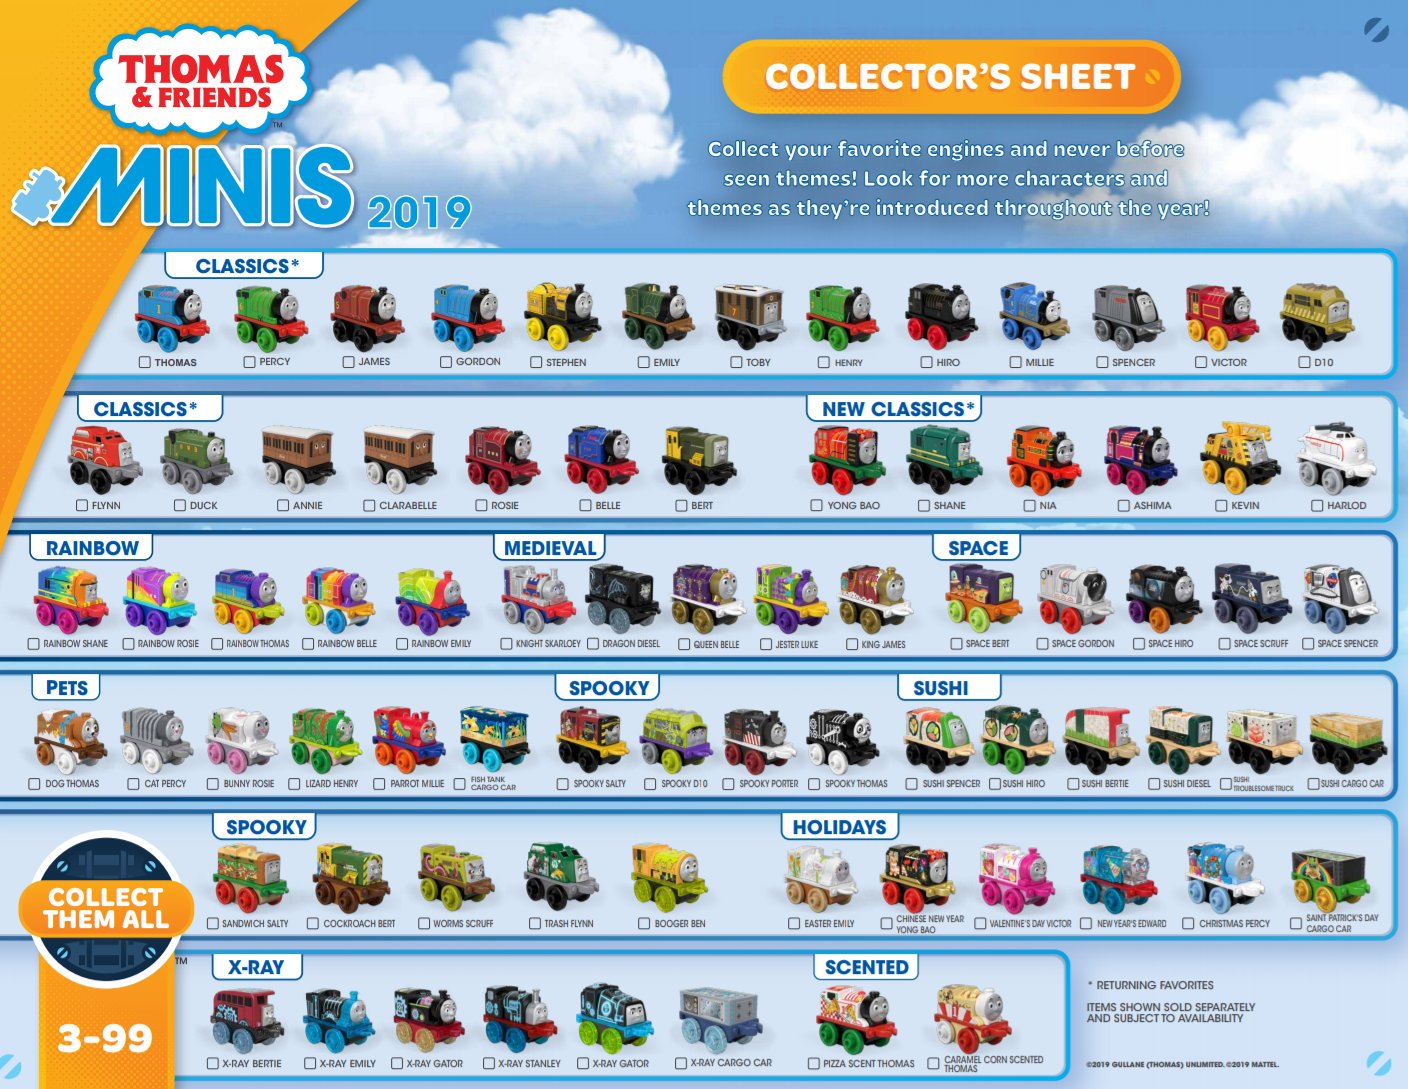 2019 Series | Thomas and Friends MINIS Wiki | FANDOM powered